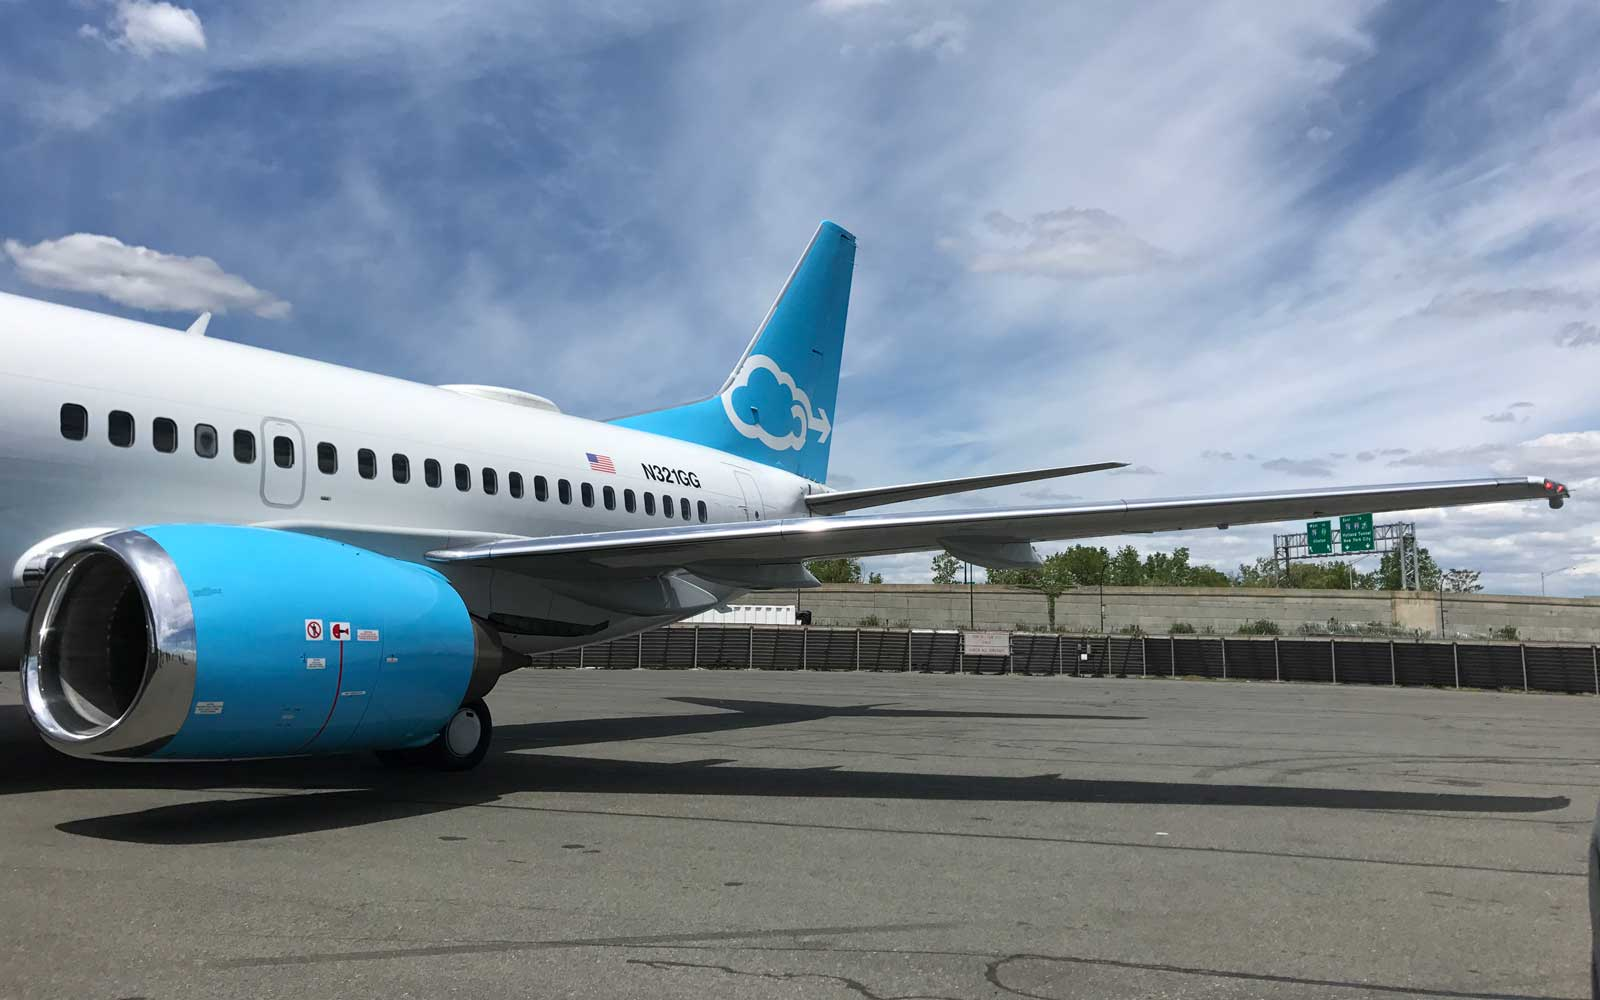 Testing Gogo's new 2Ku in-flight Wi-Fi